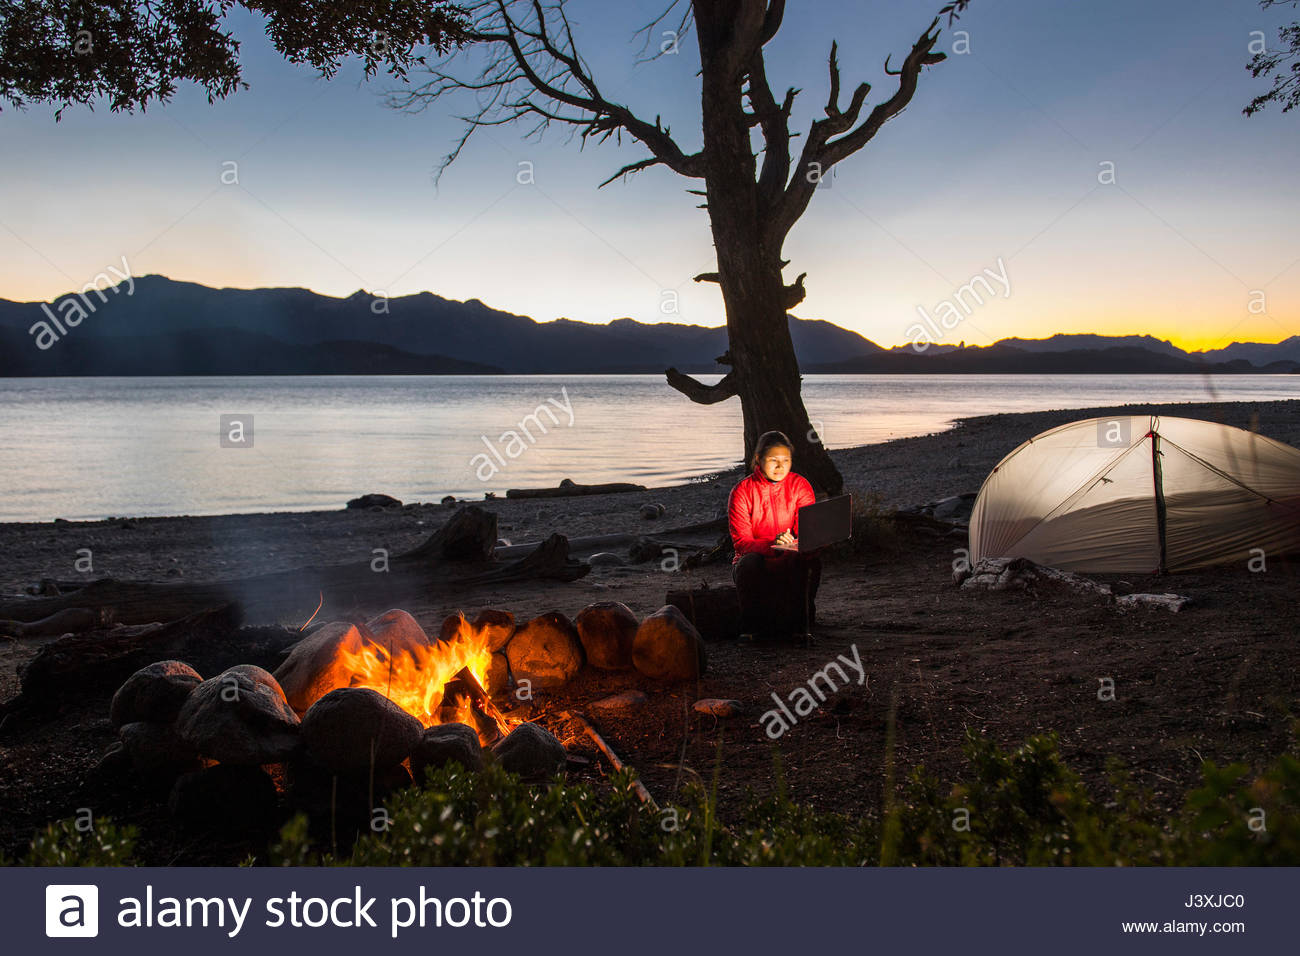 Woman looking at her laptop by a campfire at Nahuel Huapi Lake in Patagonia - Stock Image